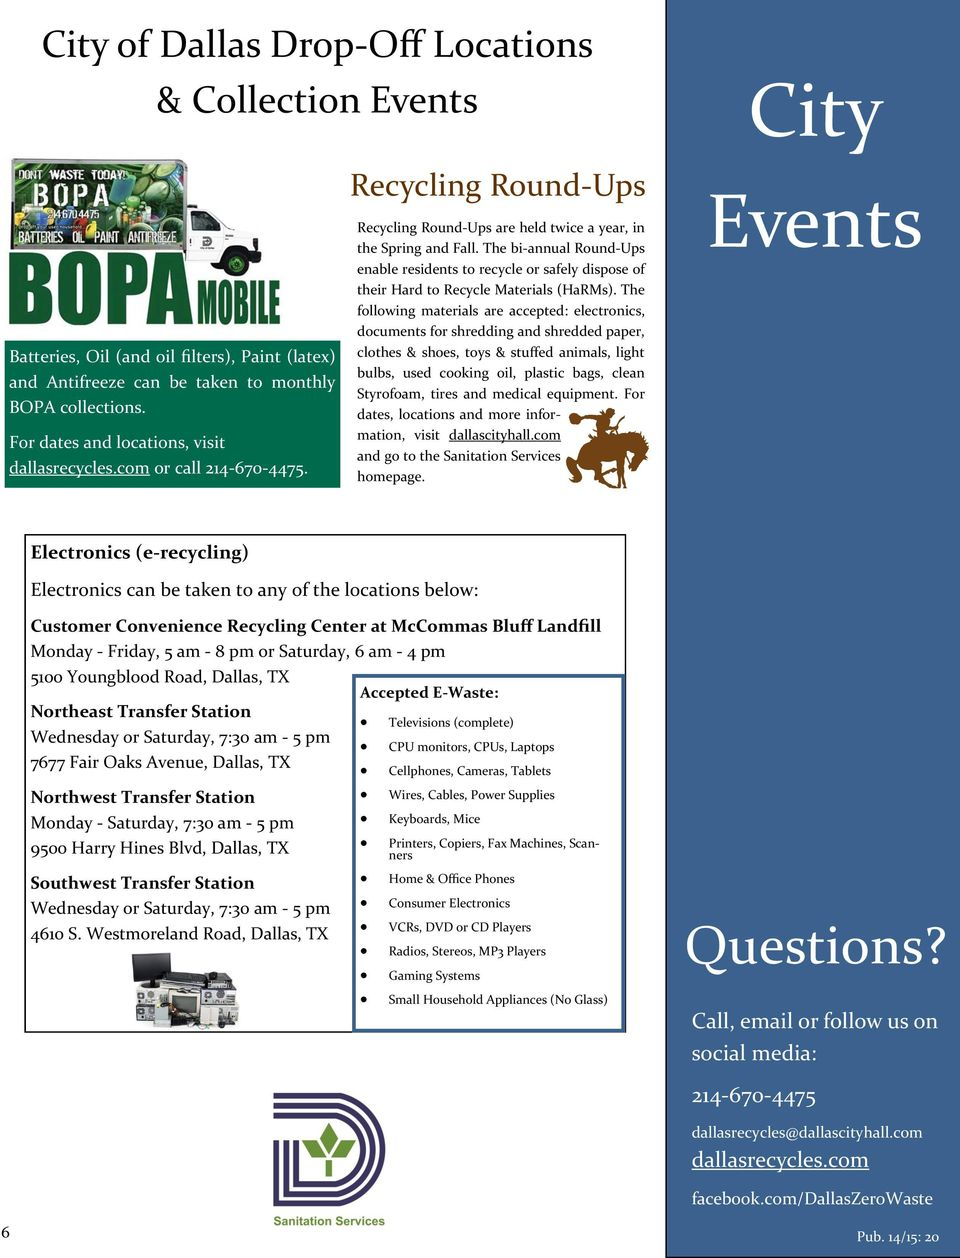 The bi-annual Round-Ups enable residents to recycle or safely dispose of their Hard to Recycle Materials (HaRMs).